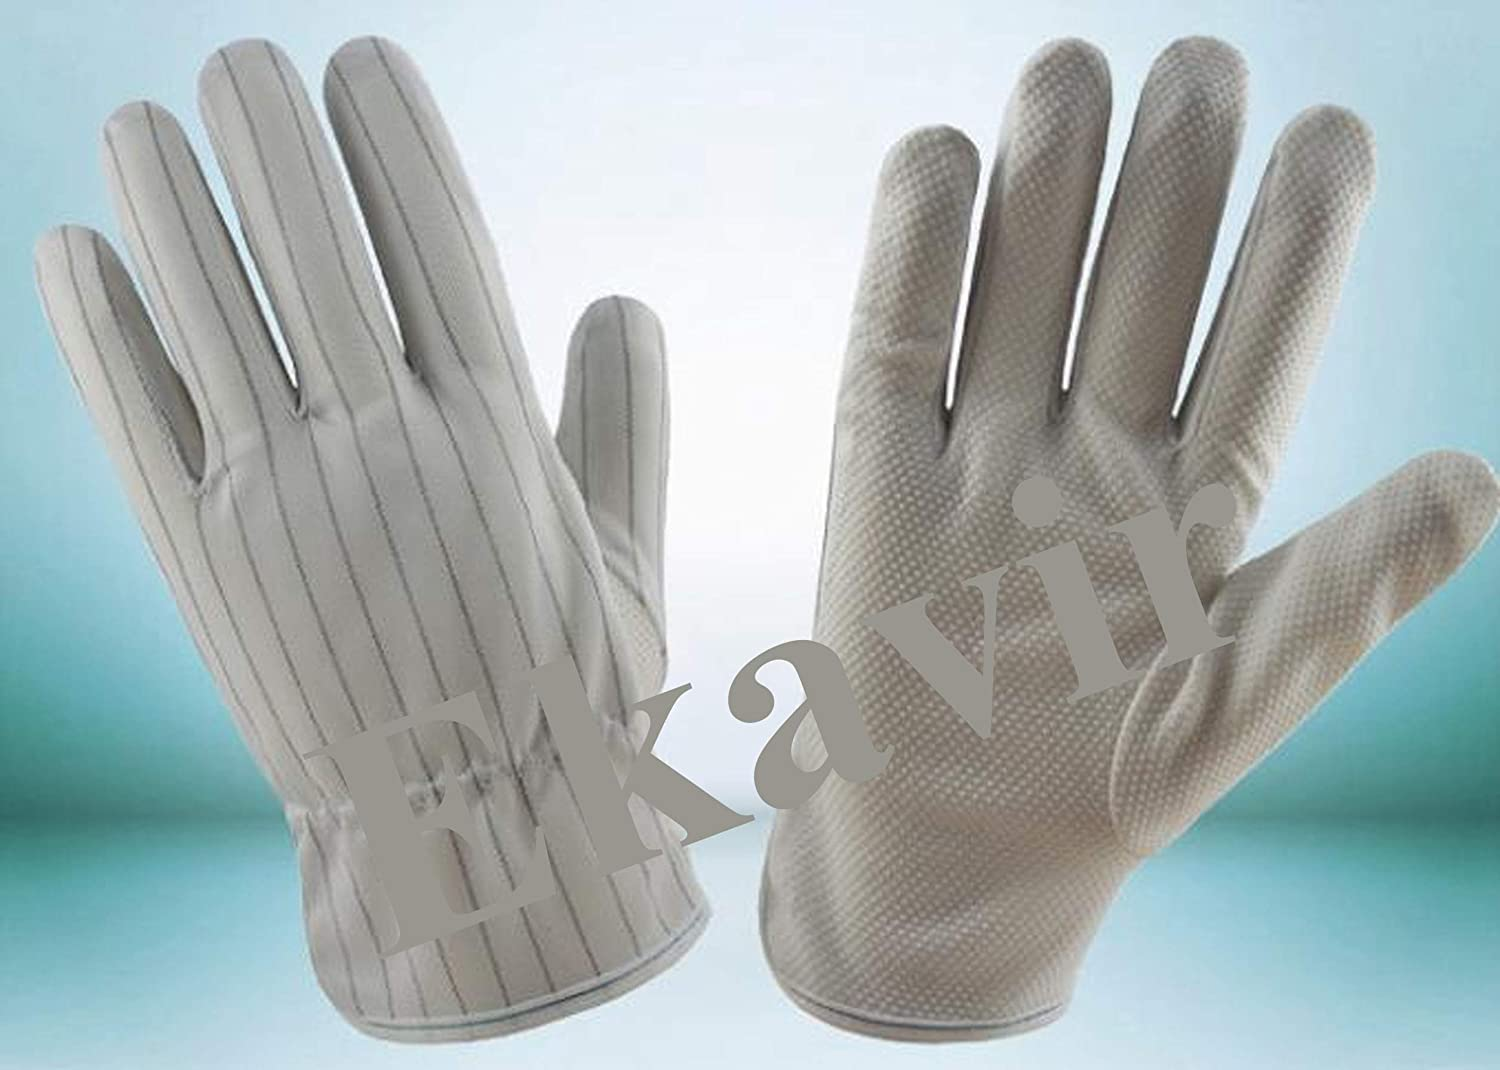 Ekavir ESD Safe Hand Gloves, Anti Static Hand Gloves, for Electronics Product use Computer, Mobile Repair Etc. (2 Pair)